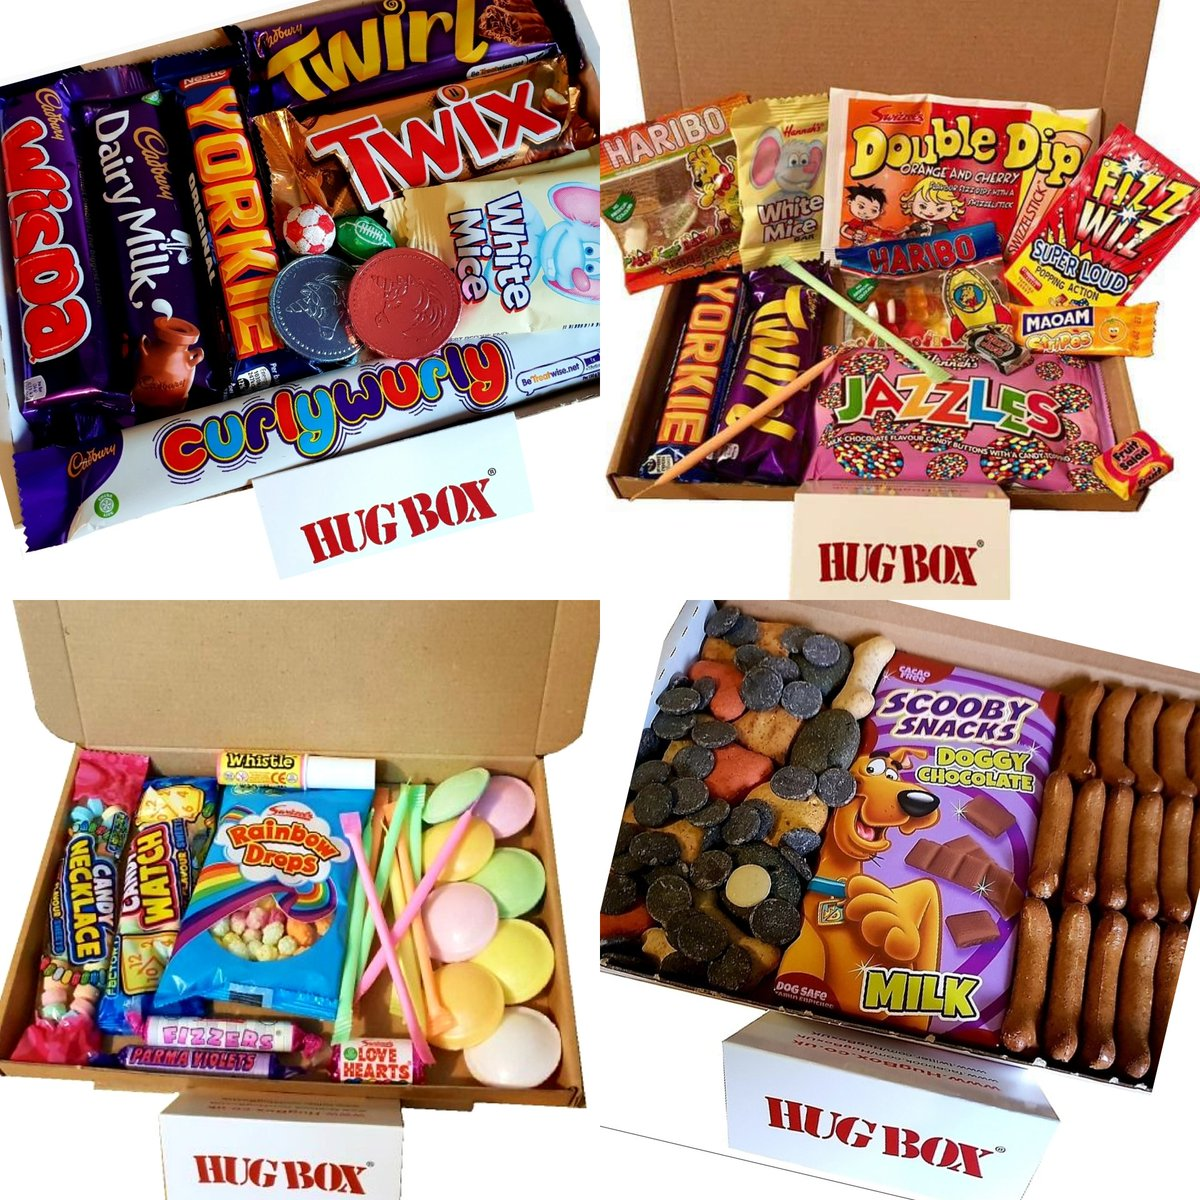 Make someone special smile with a Letterbox HUG BOX 😍 1st Class & only £8.50 delivered 😎 https://t.co/YkHv0UttMr #Gift #Nurse #Doctor #Teacher #Police #Fireman #neighbour #family #friend #Hero #Thanks #ThankYou #Mum #Dad #Sister #Brother #Uncle #Aunt #Gran #Grandpa #Papa #nana https://t.co/5UznY7x0sI